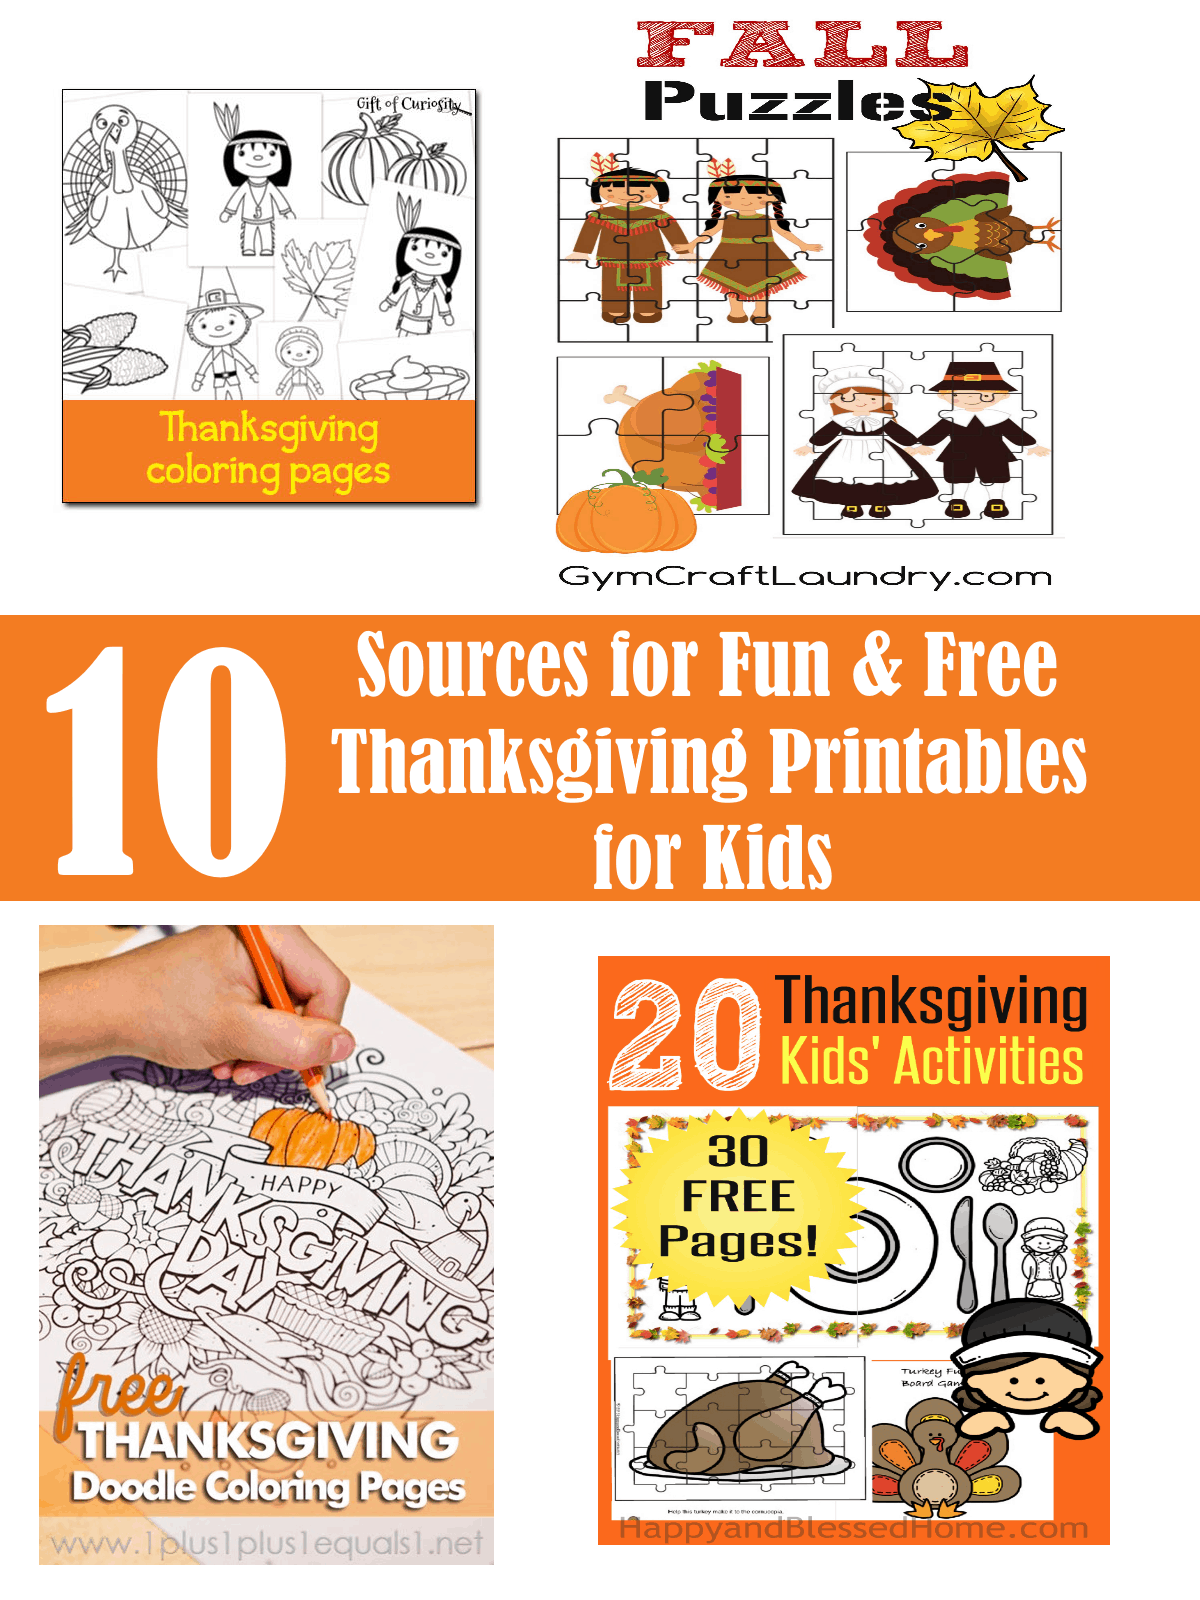 10 Sources for Fun & Free Thanksgiving Printables for Kids